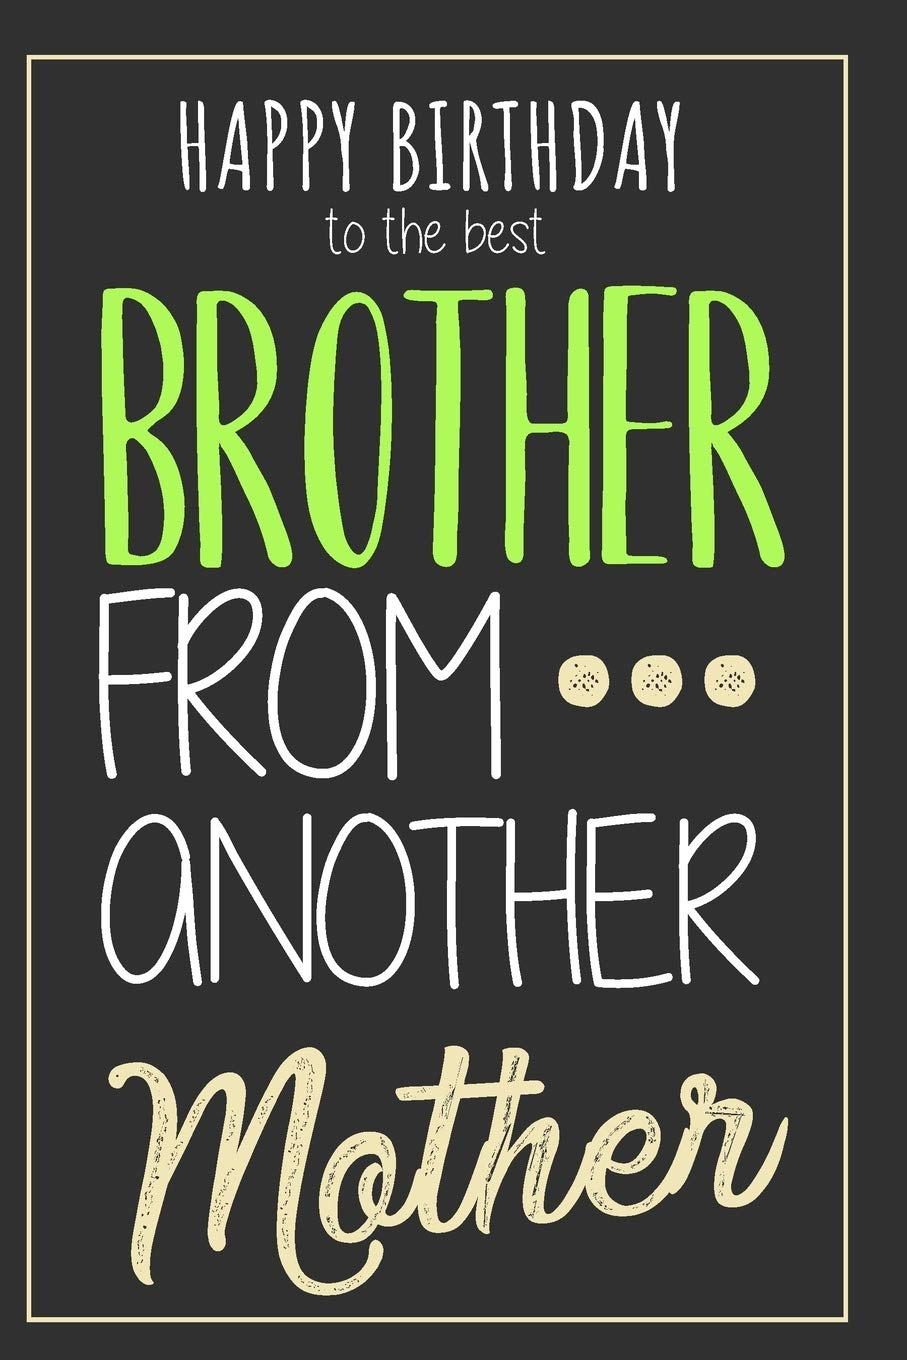 Brother From Another Mother Original Birthday Gift For Your Best Friend Notebook With Blank Lined Pages Best Way To Say Happy Birthday To Your Brotha From Anotha Motha Publishing David